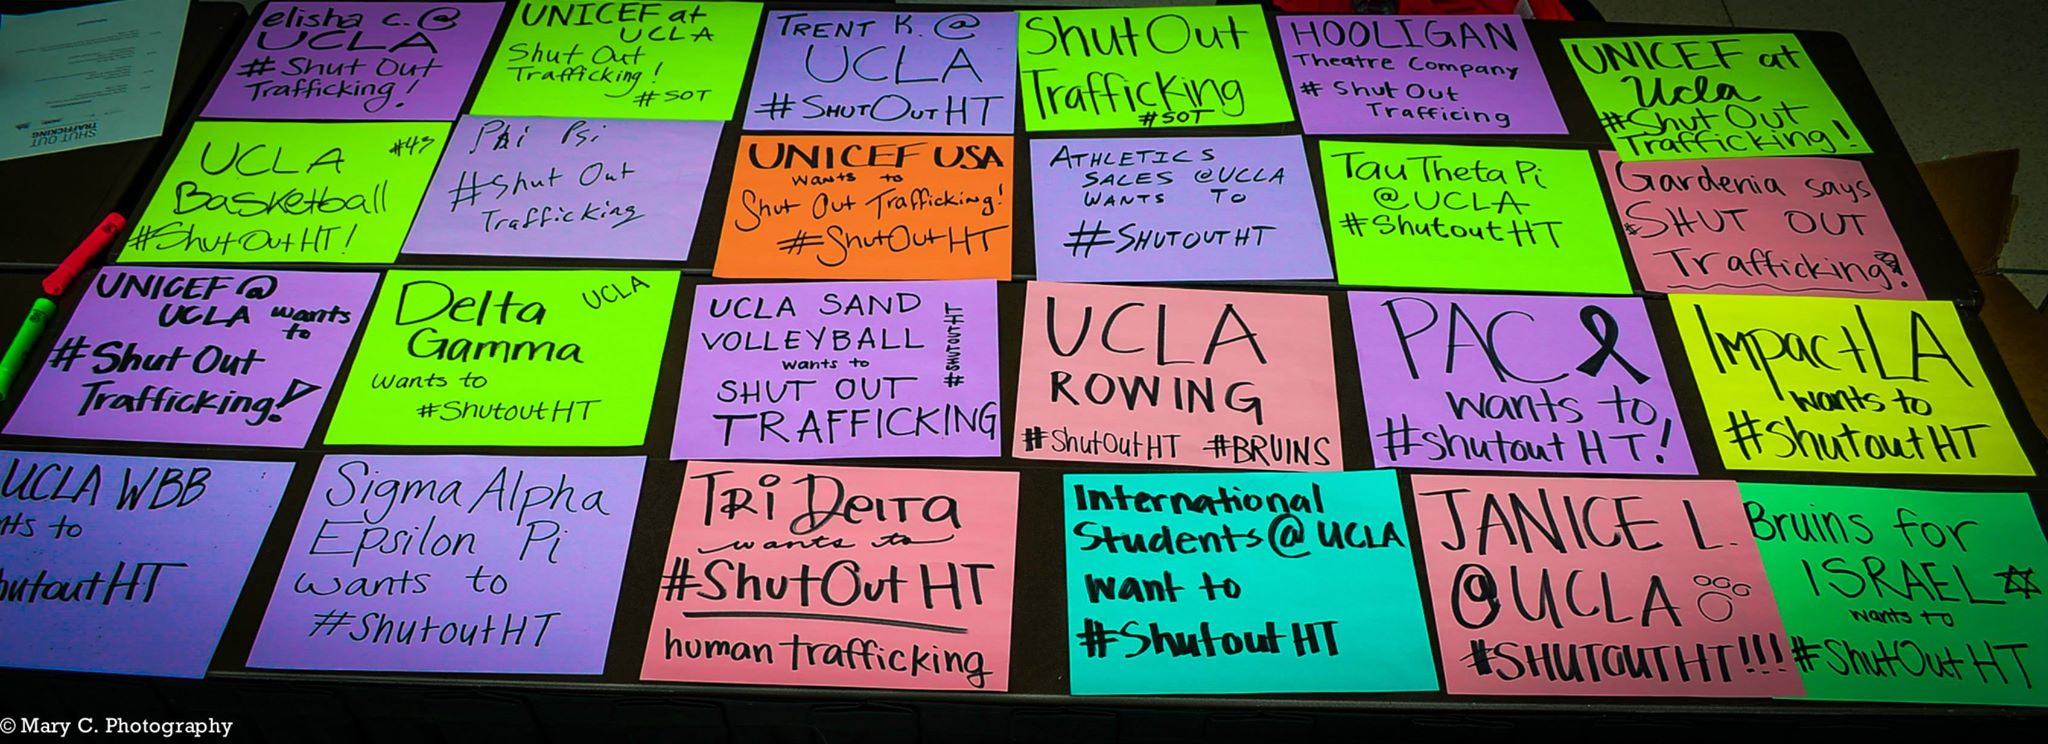 Shut Out Trafficking Signs at UCLA